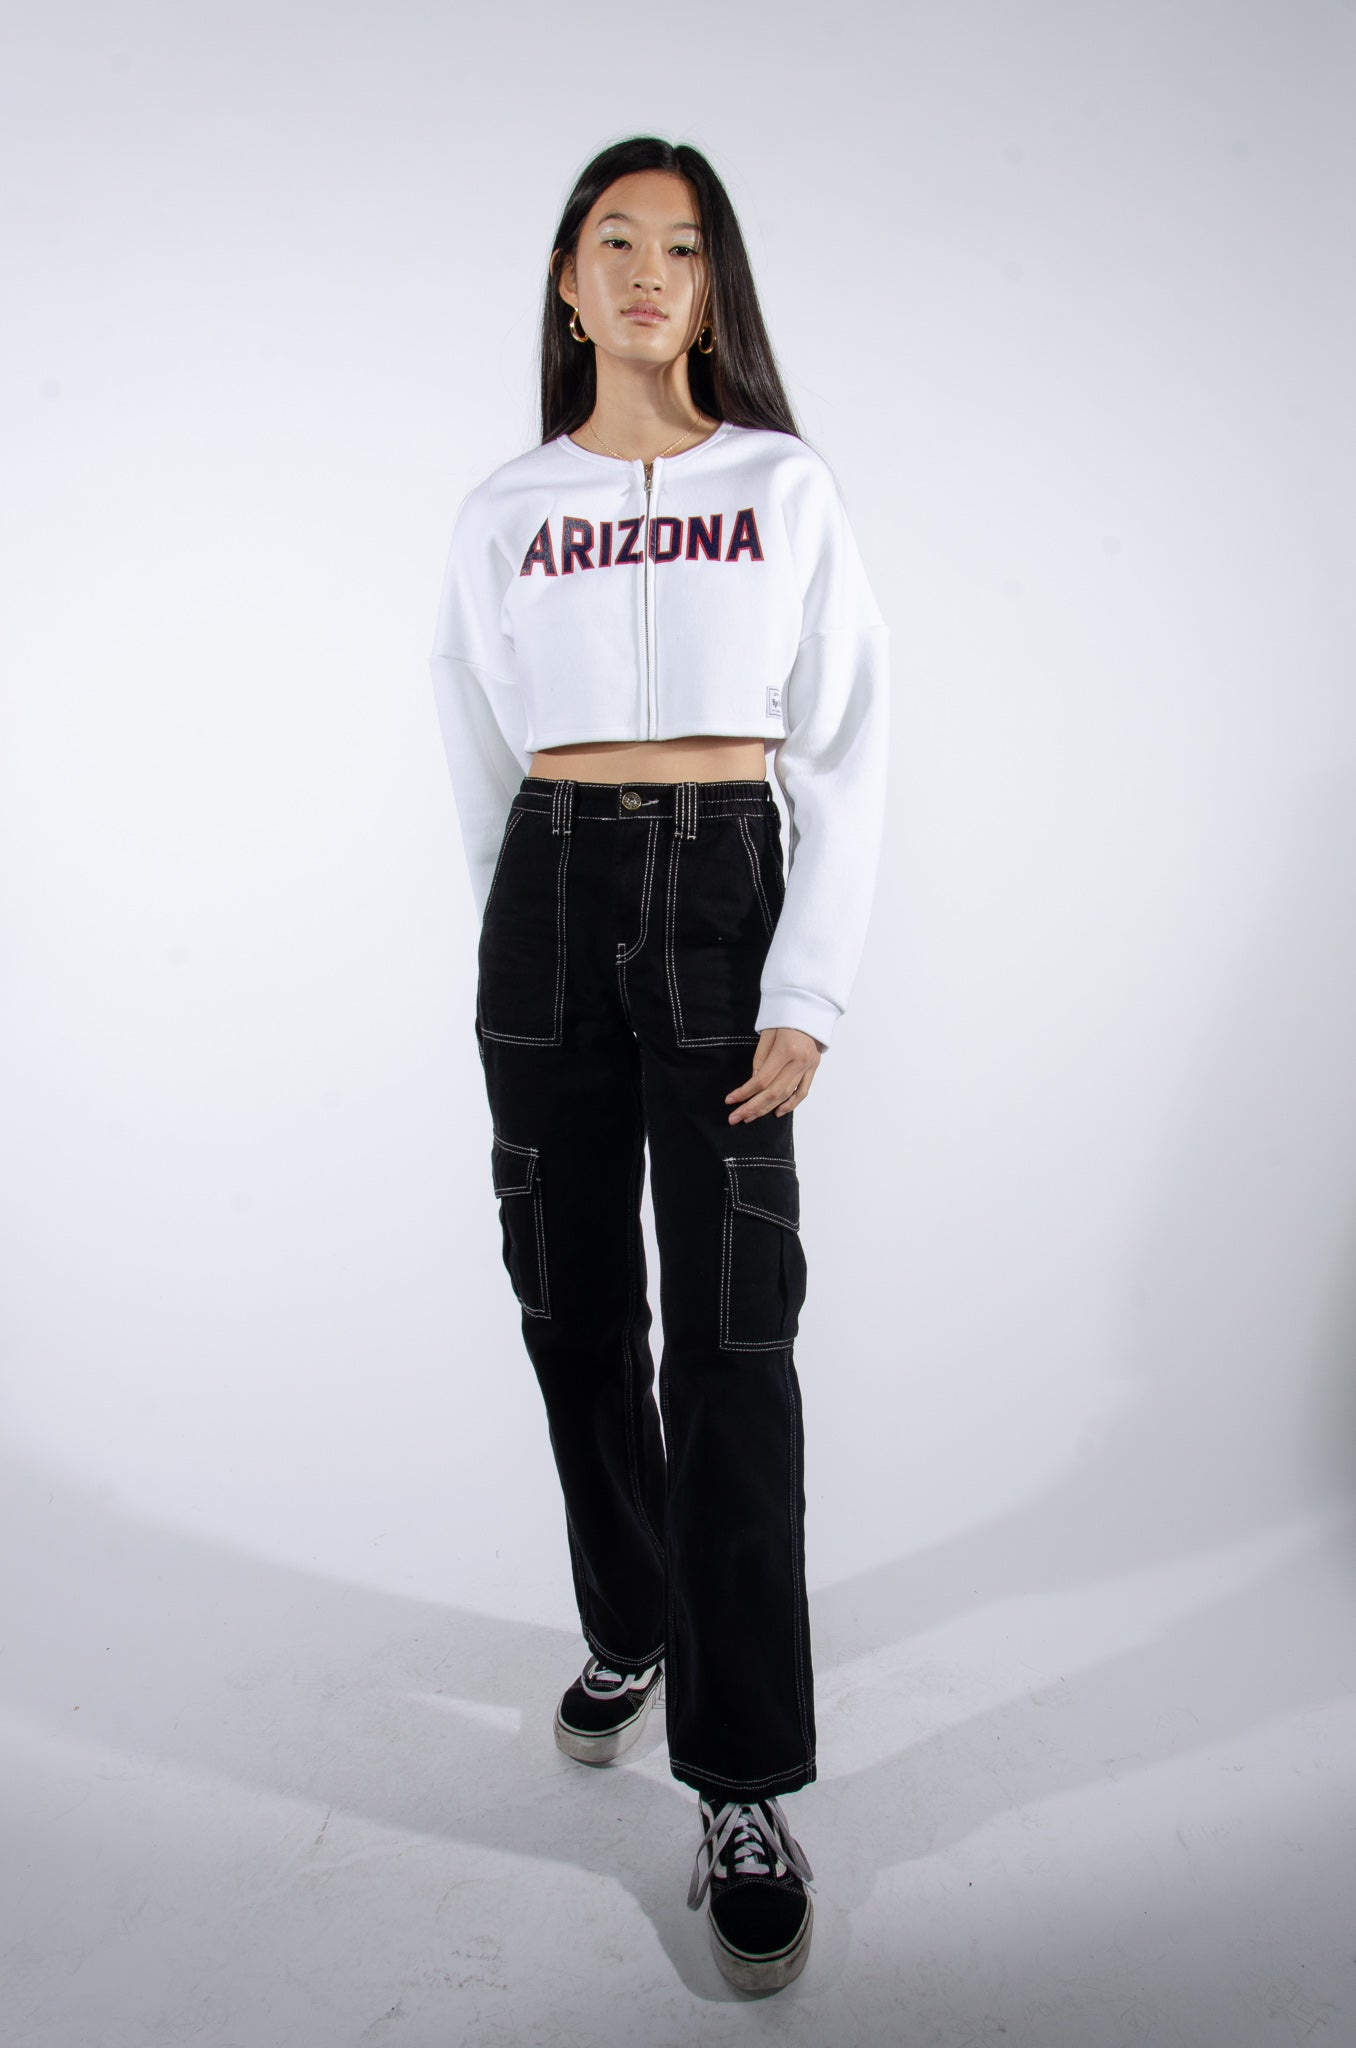 Arizona Cropped Zip-Up - Hype and Vice